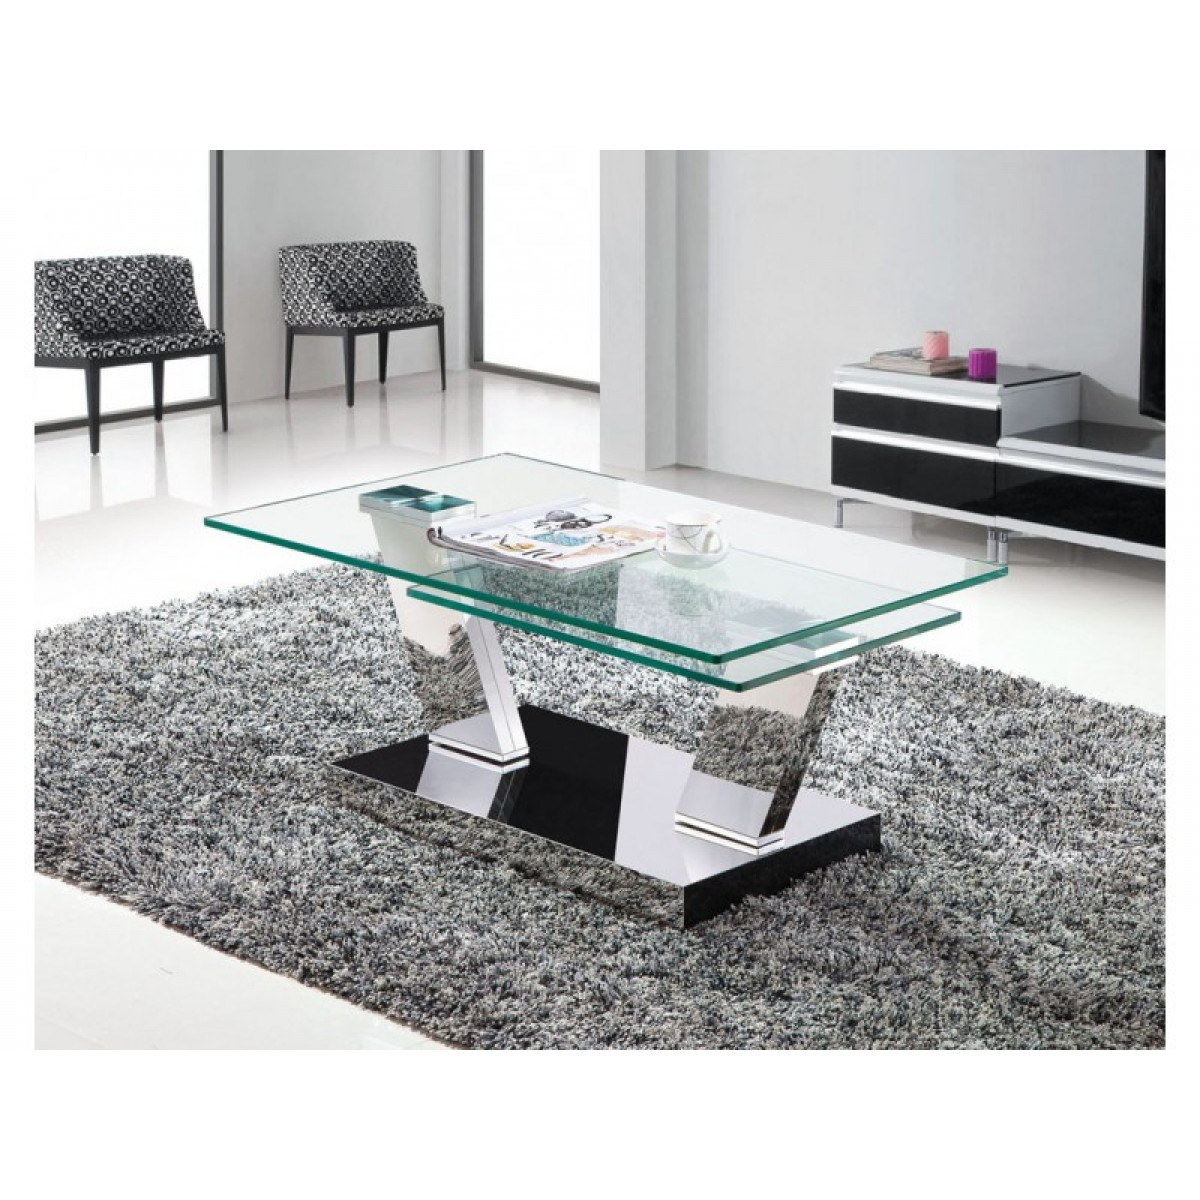 table basse double plateaux transparents carr s chrom s briega pop. Black Bedroom Furniture Sets. Home Design Ideas